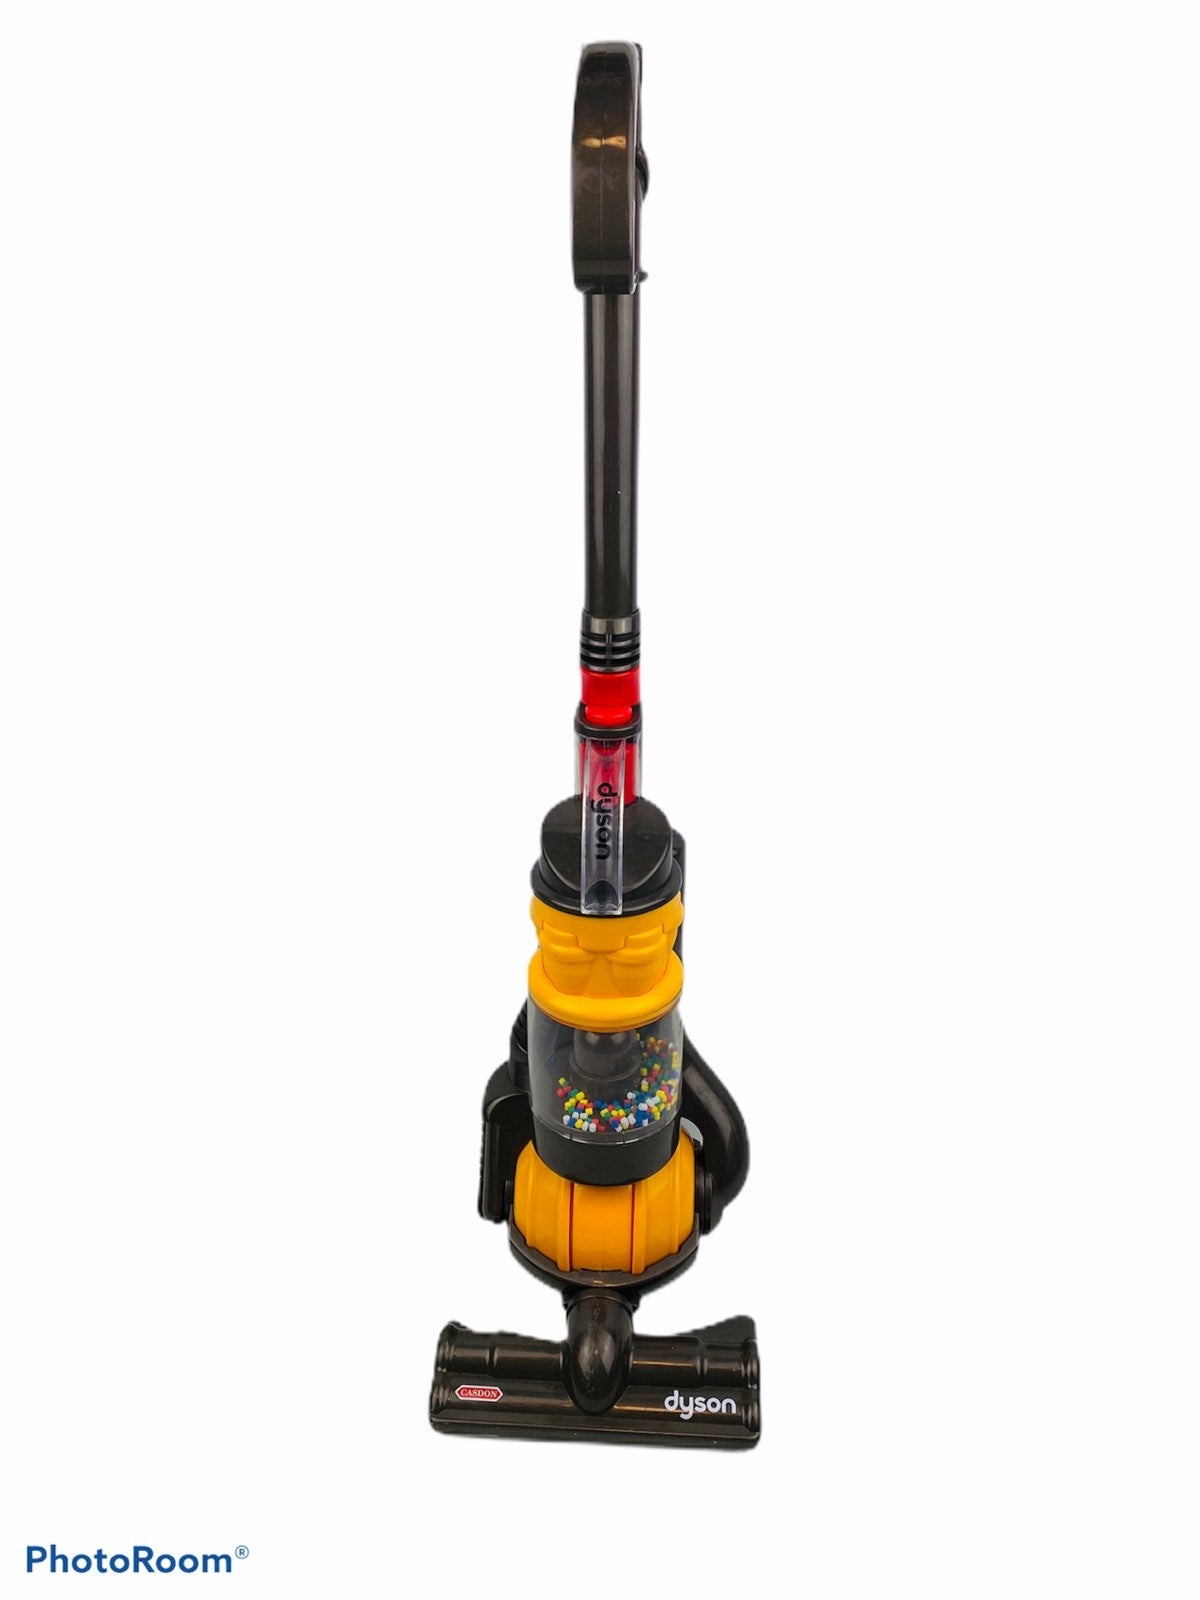 Carson Dyson Ball Vacuum Toy Electronic